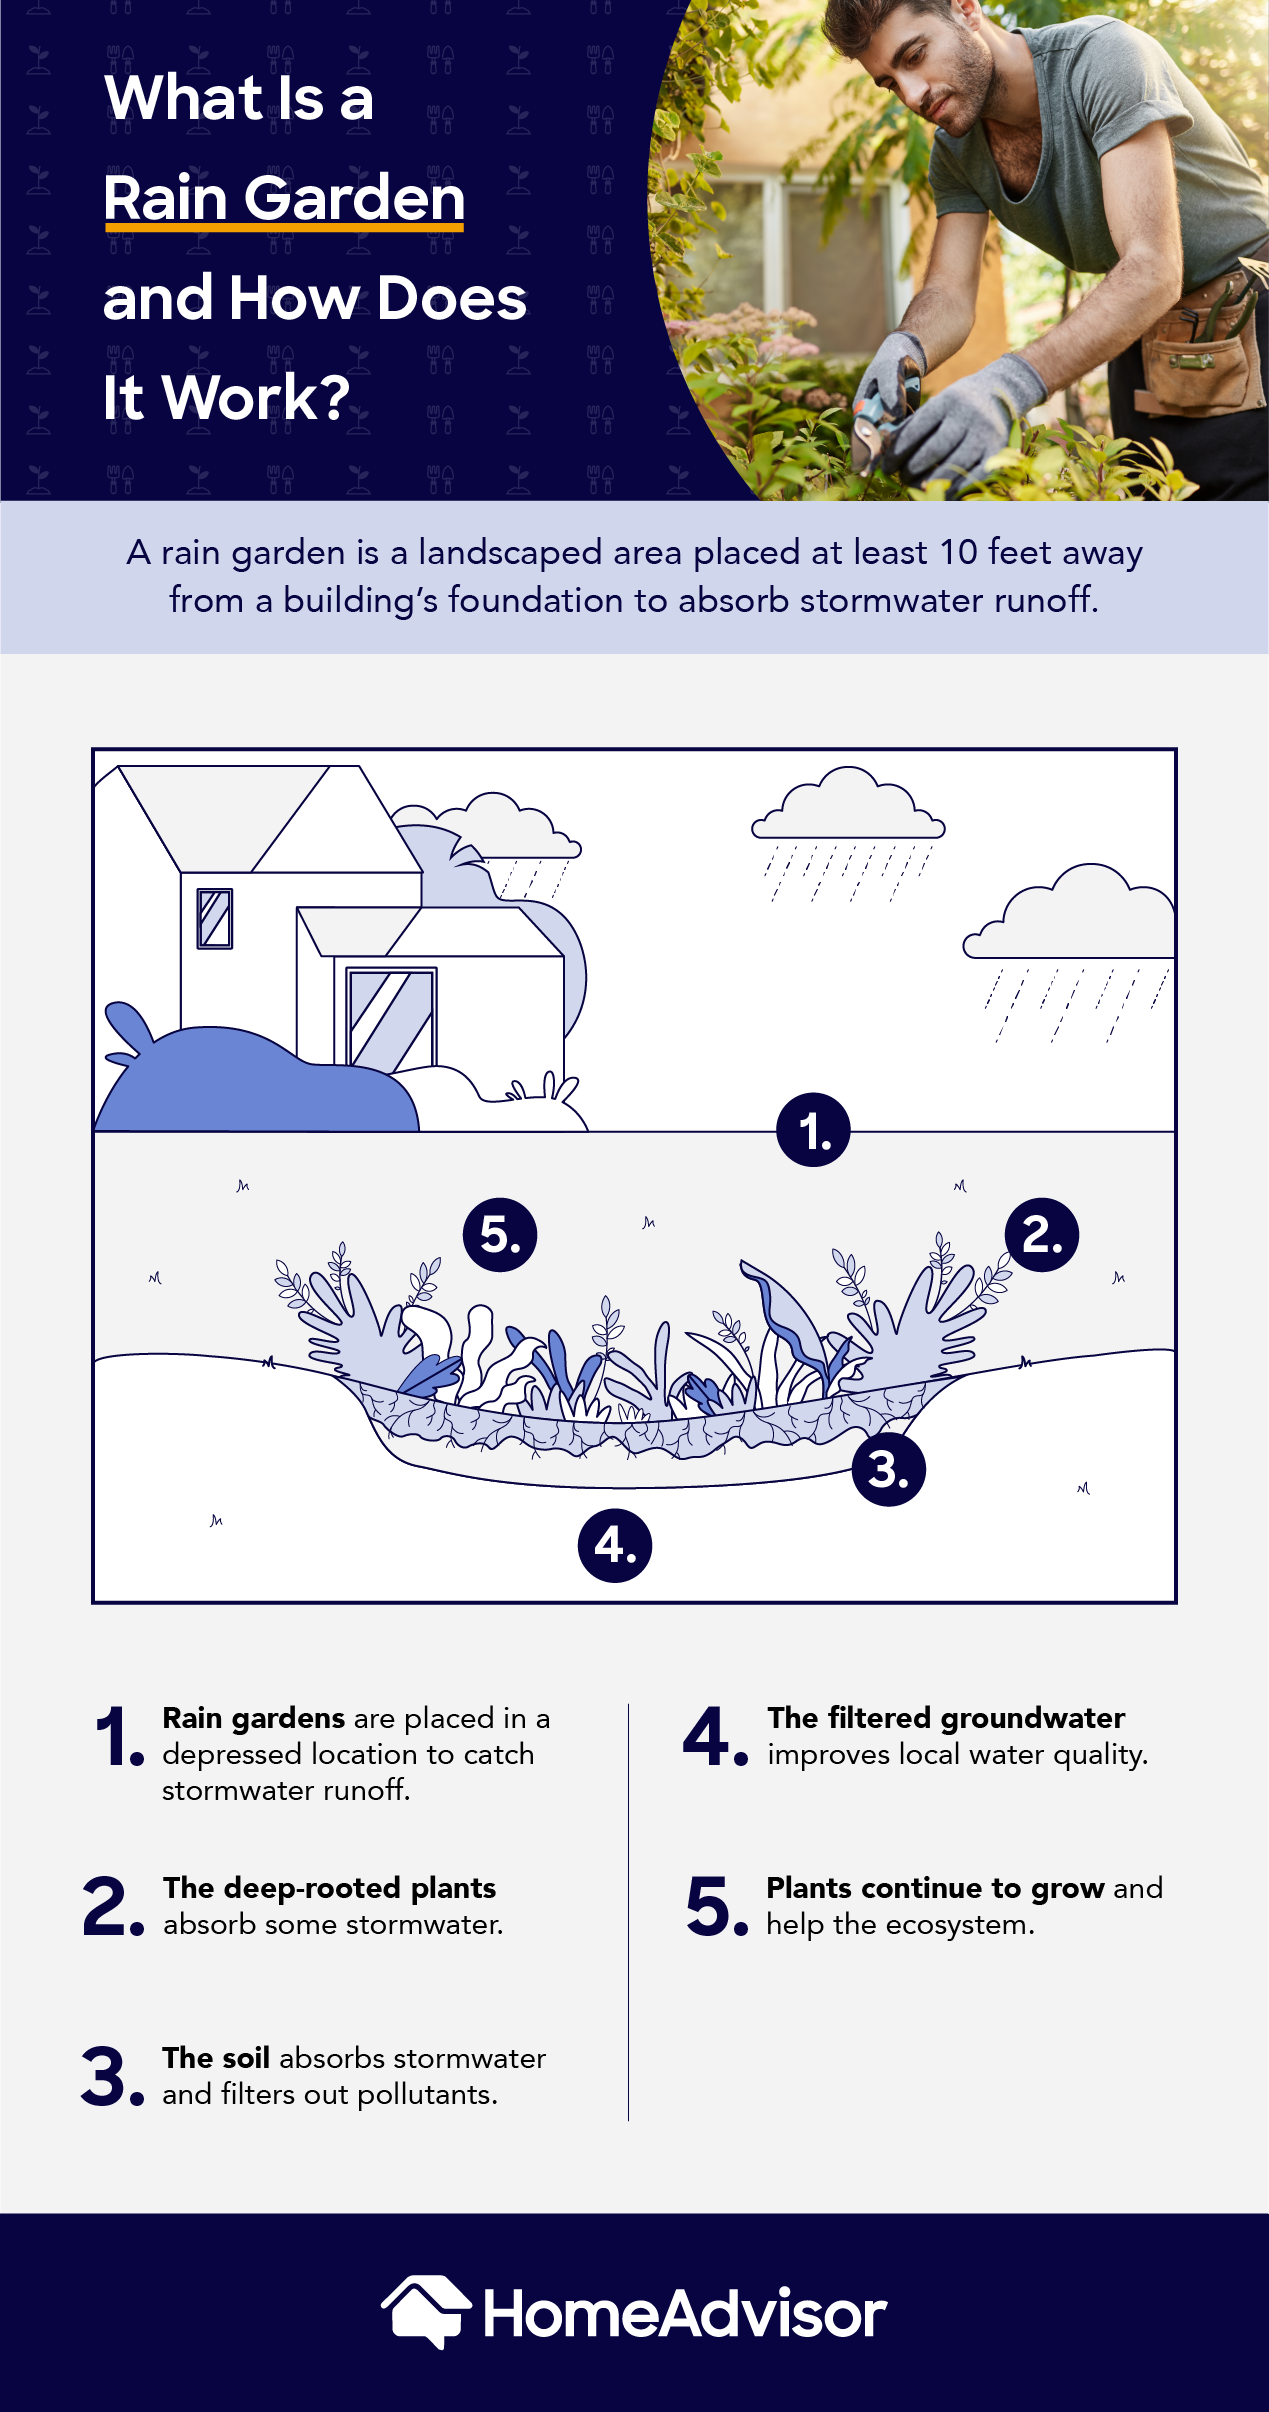 what is a rain garden and how does it work?